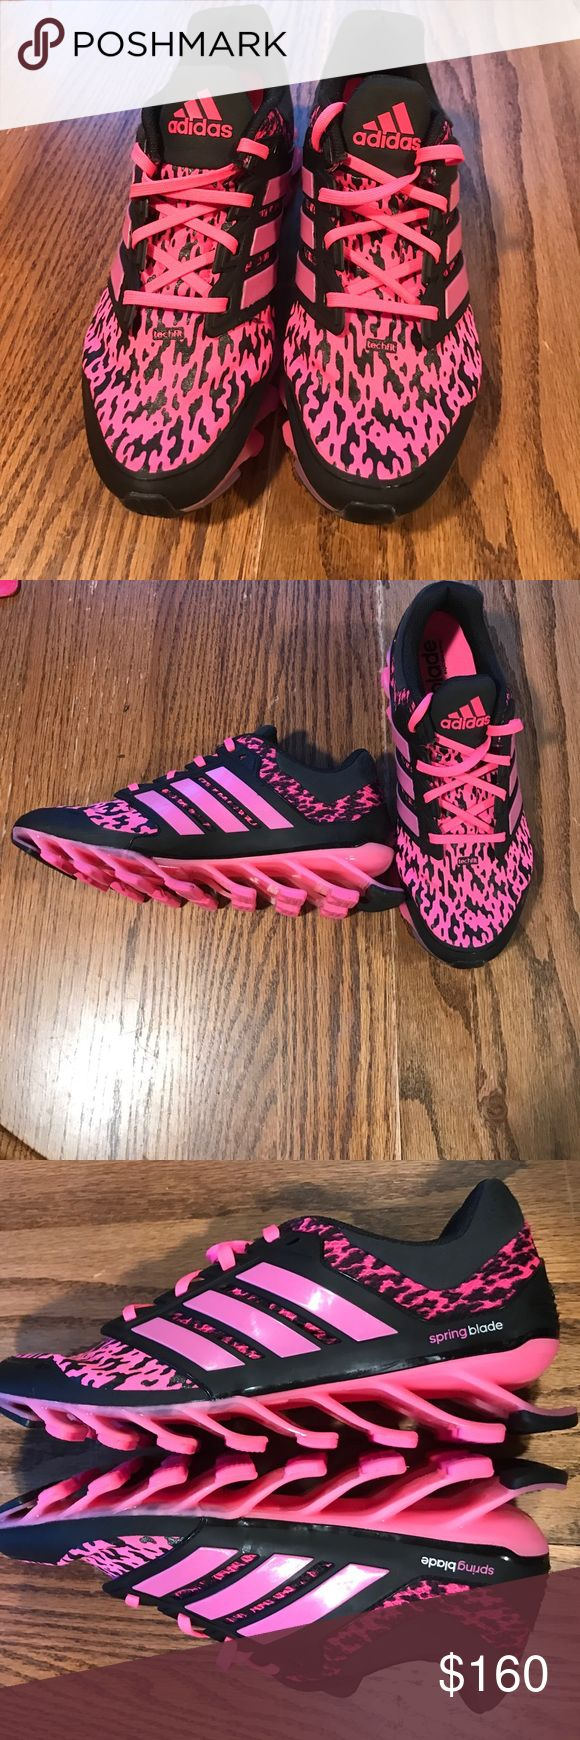 Like new Adidas Pink/Black Leopard Springblades Women's Adidas Springblades. Full length Springblades. Pink/Black. Slightly worn (1-2 times). Size 8.0. Adidas Shoes Athletic Shoes